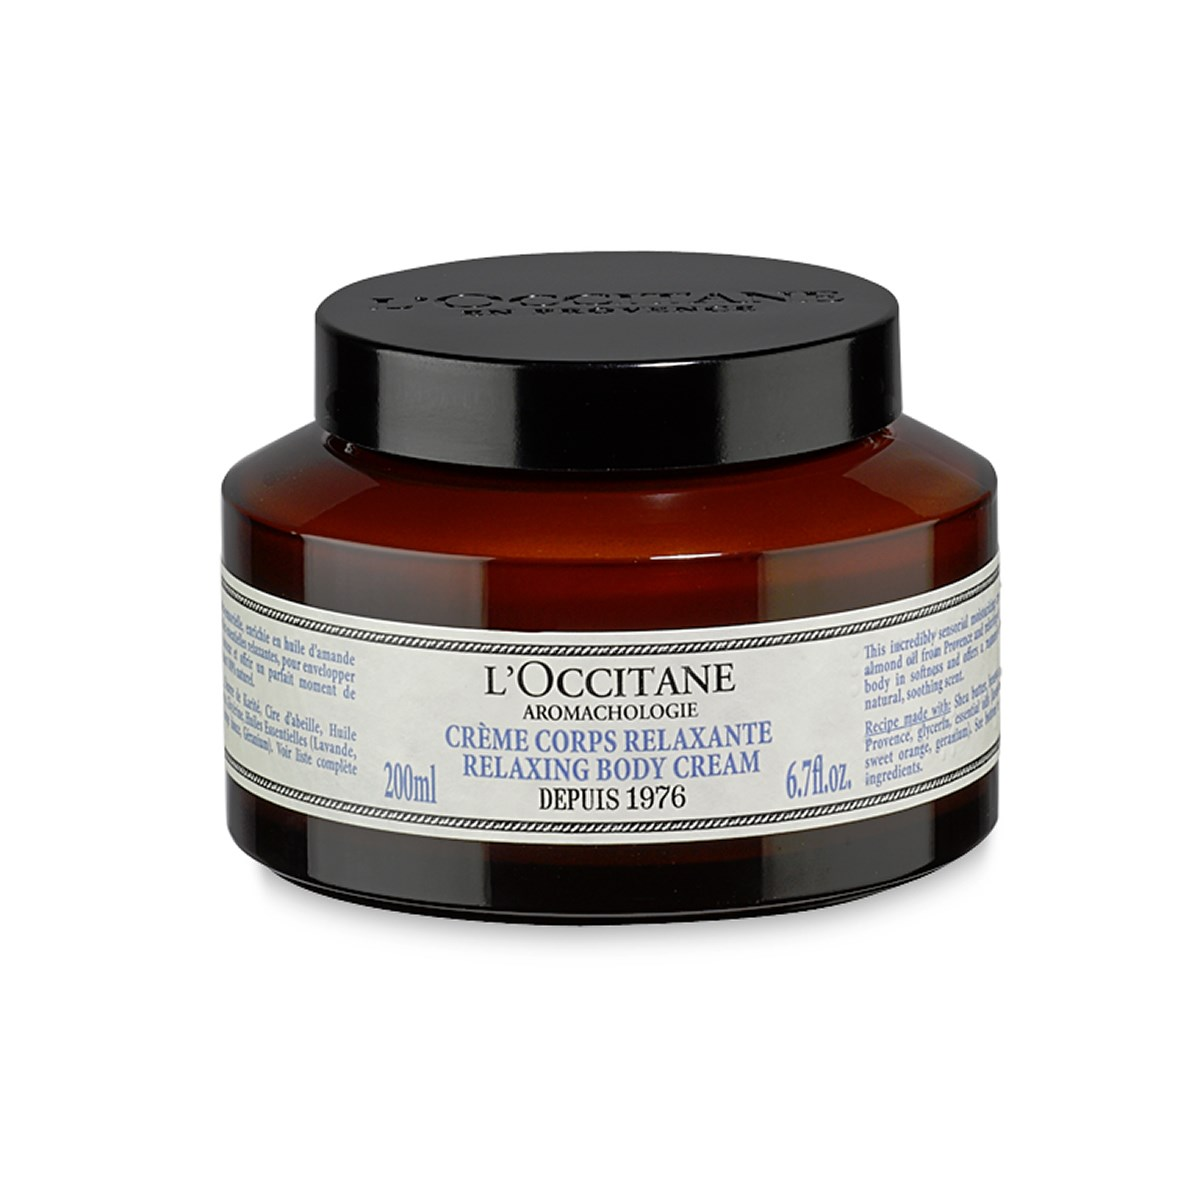 L'Occitane Aromachologie Relaxing Body Cream